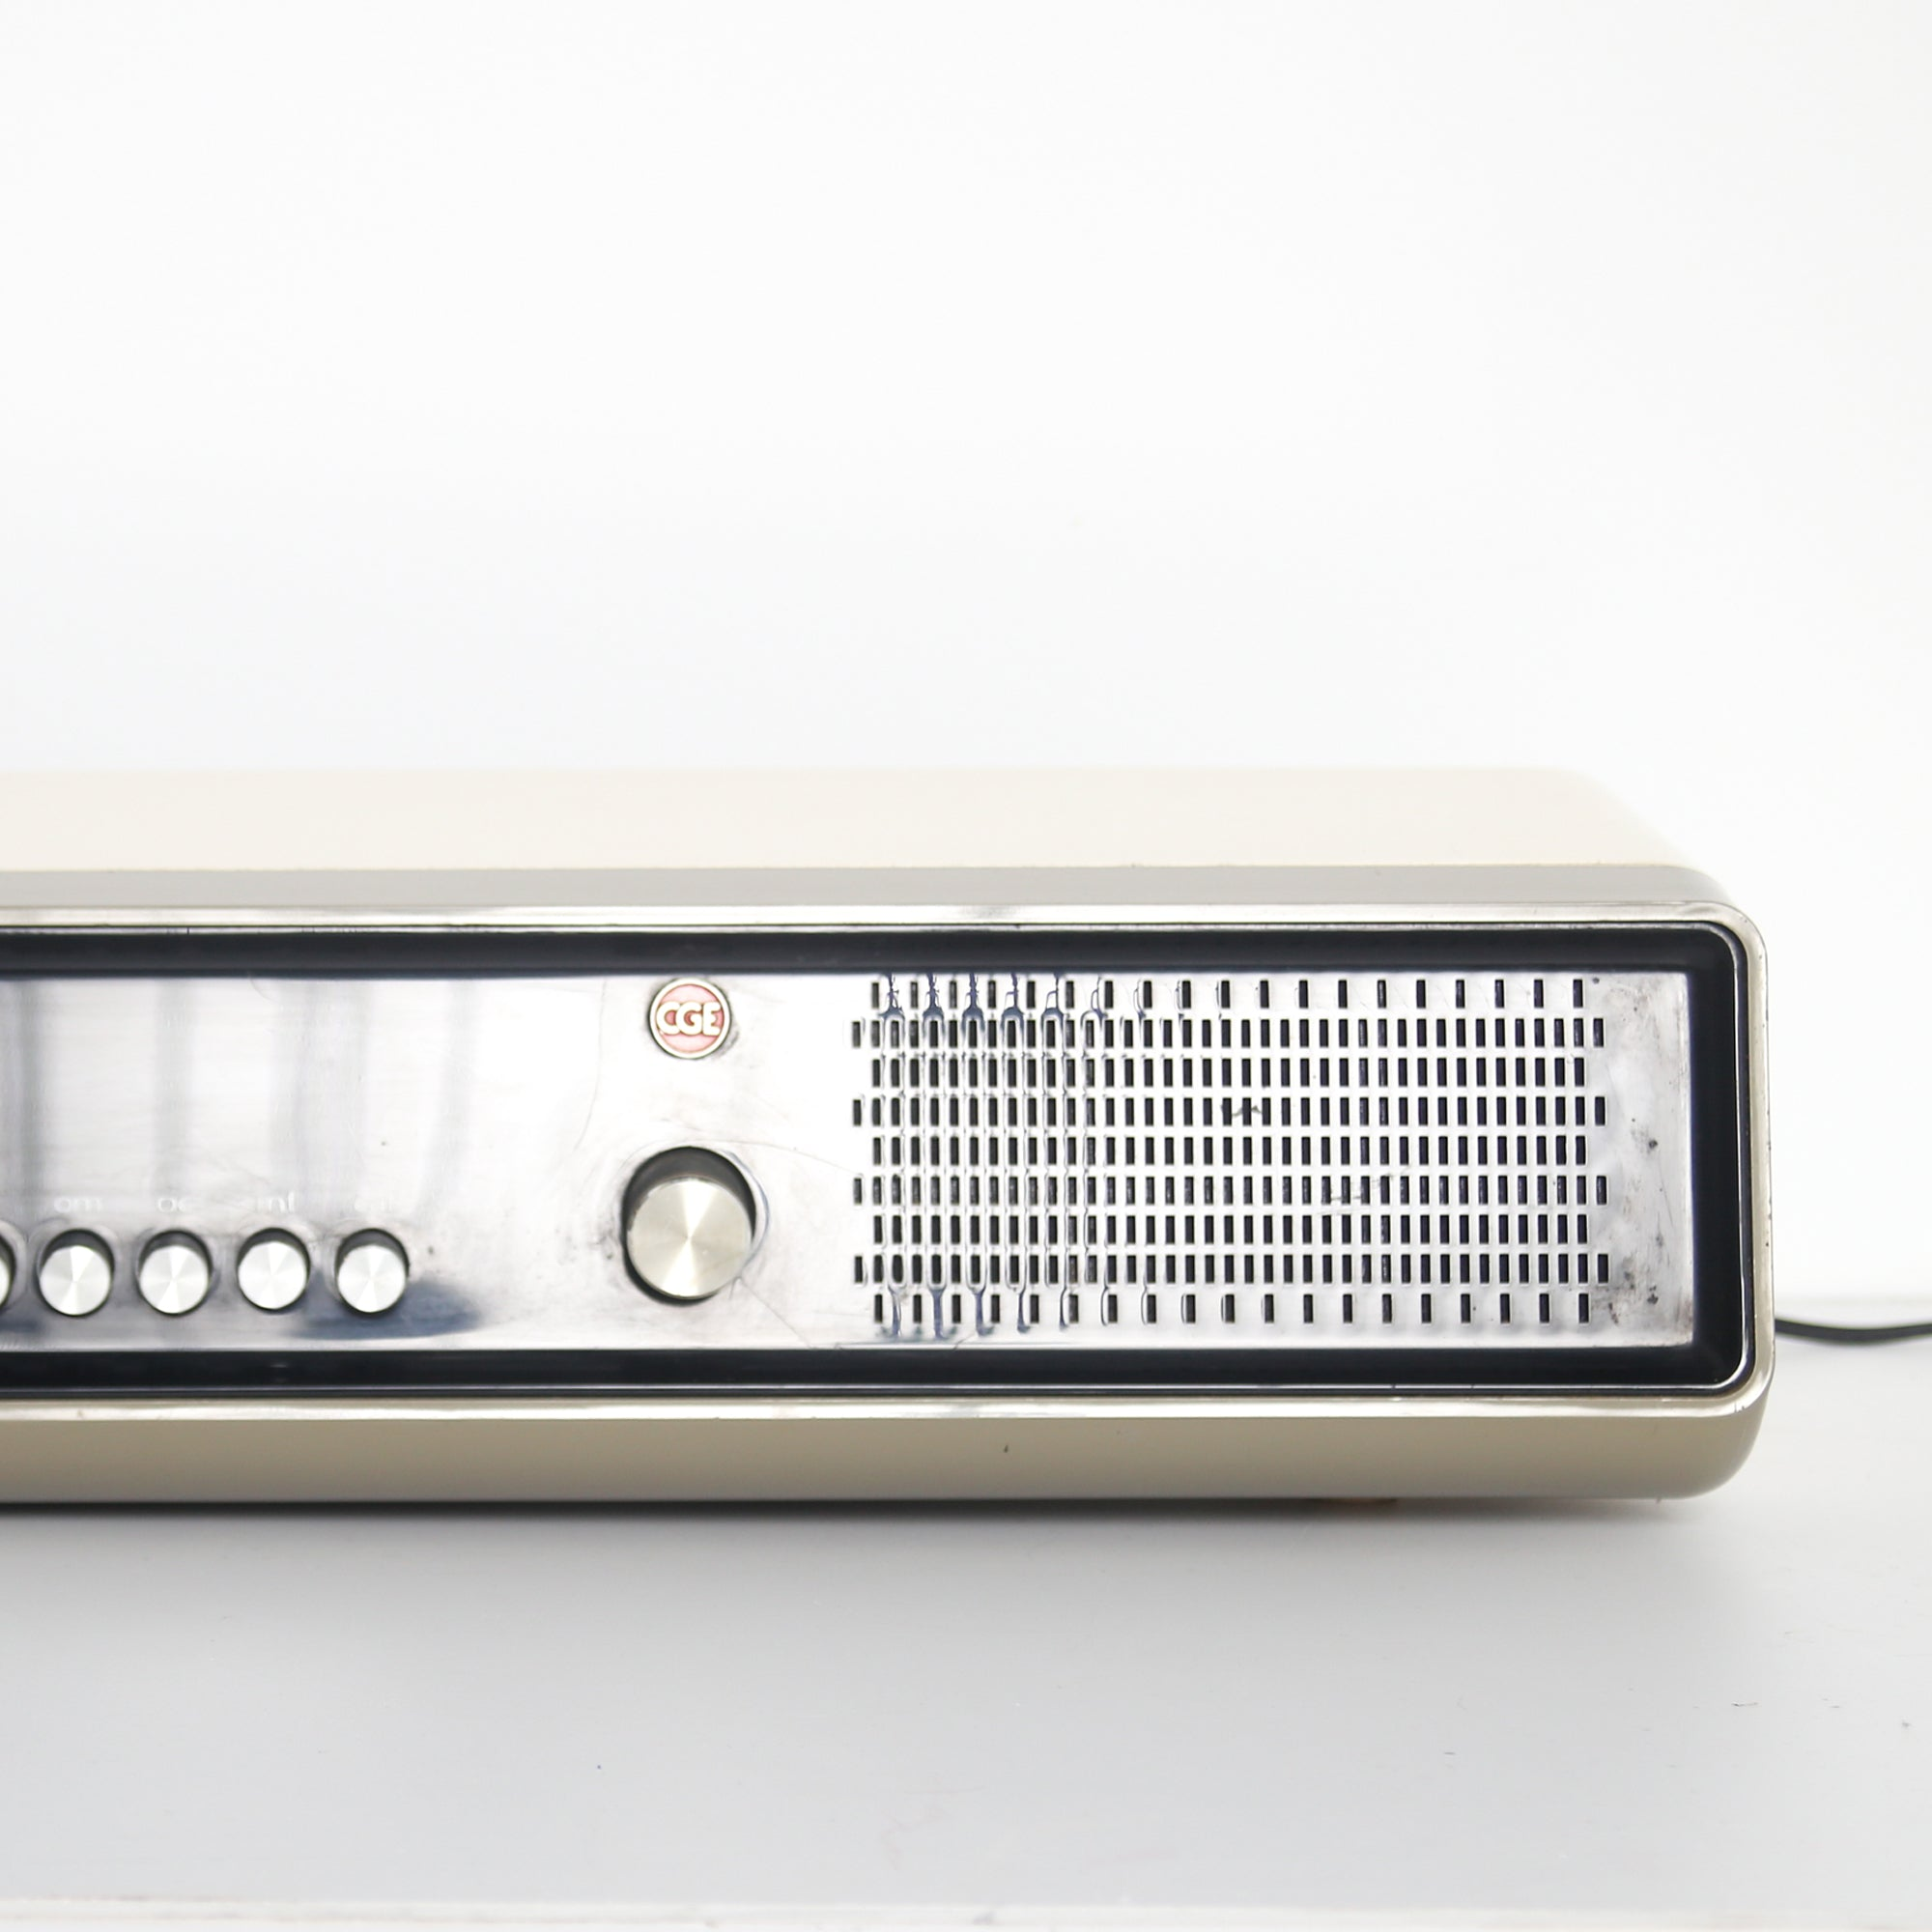 CGE 1970 Radio Made in Italy